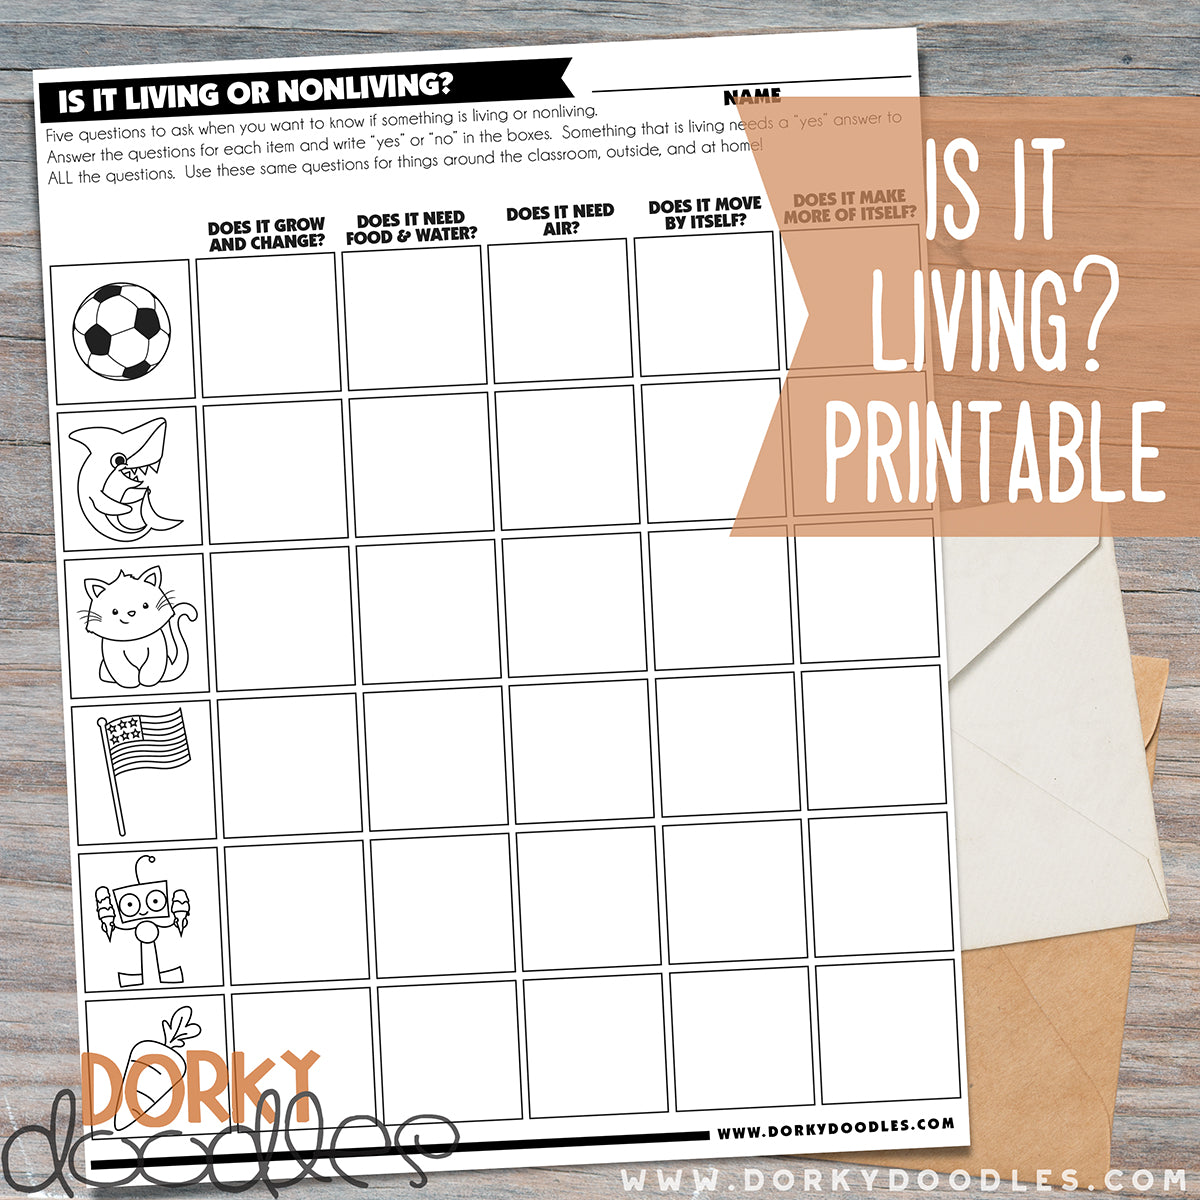 image relating to Free Printable Needs and Wants Worksheets titled Is it Residing? Totally free Printable Worksheet Dorky Doodles